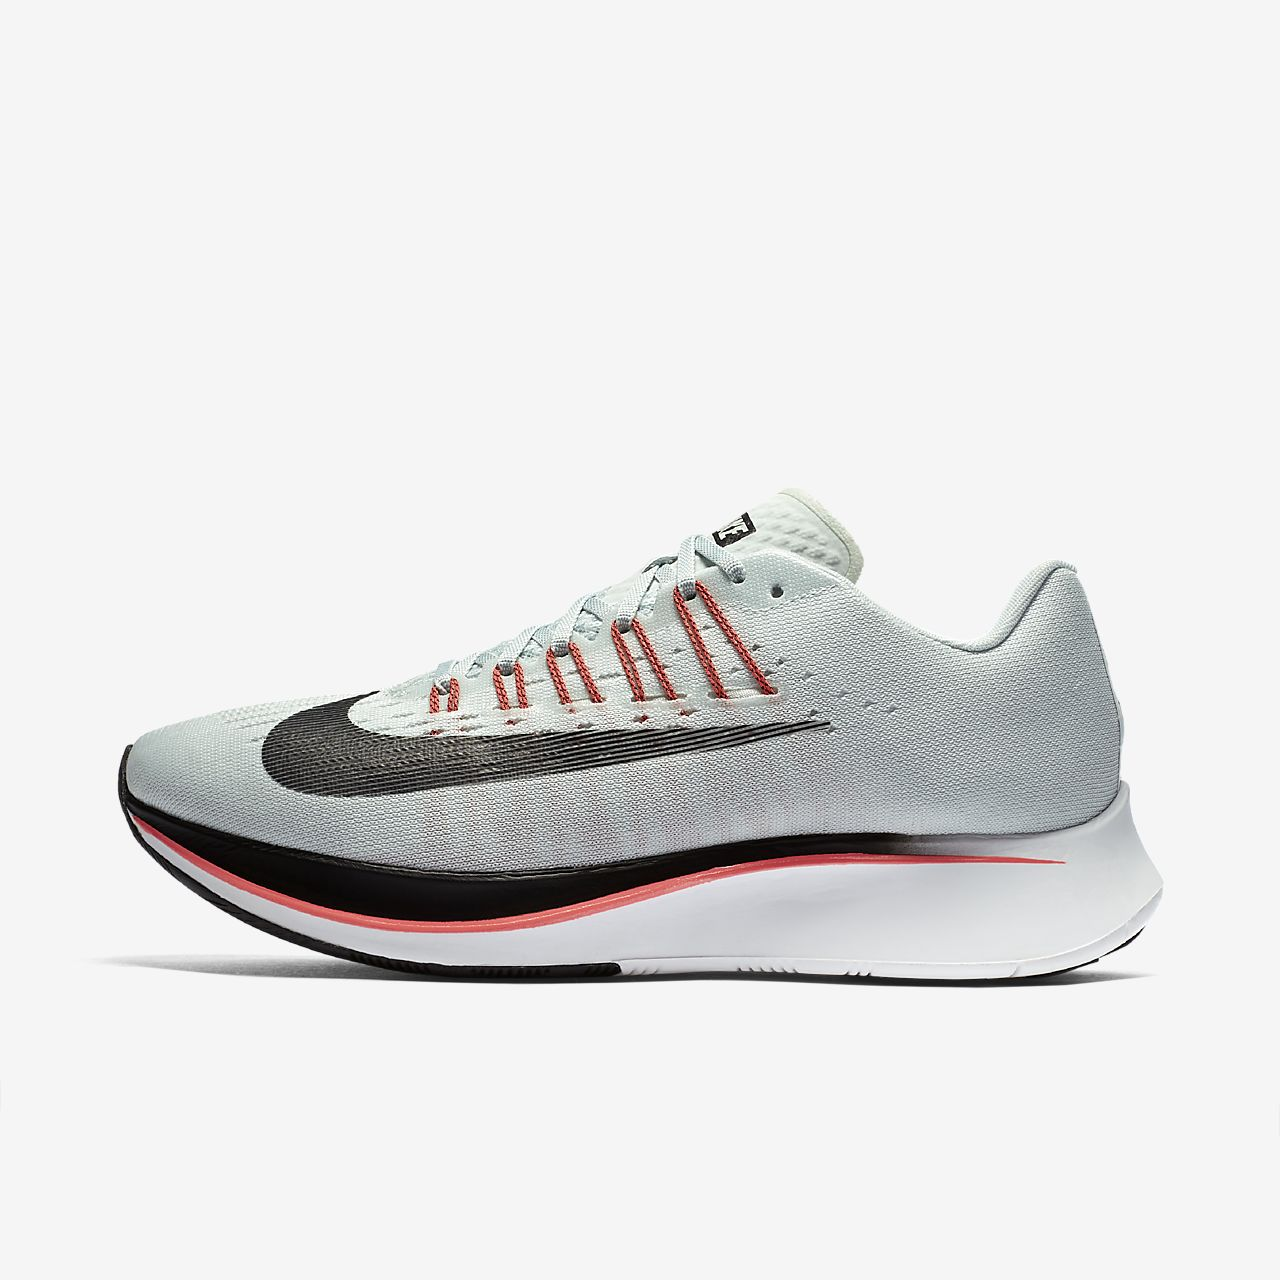 b4f2a4024f0 Nike Zoom Fly Men s Running Shoe. Nike.com SG